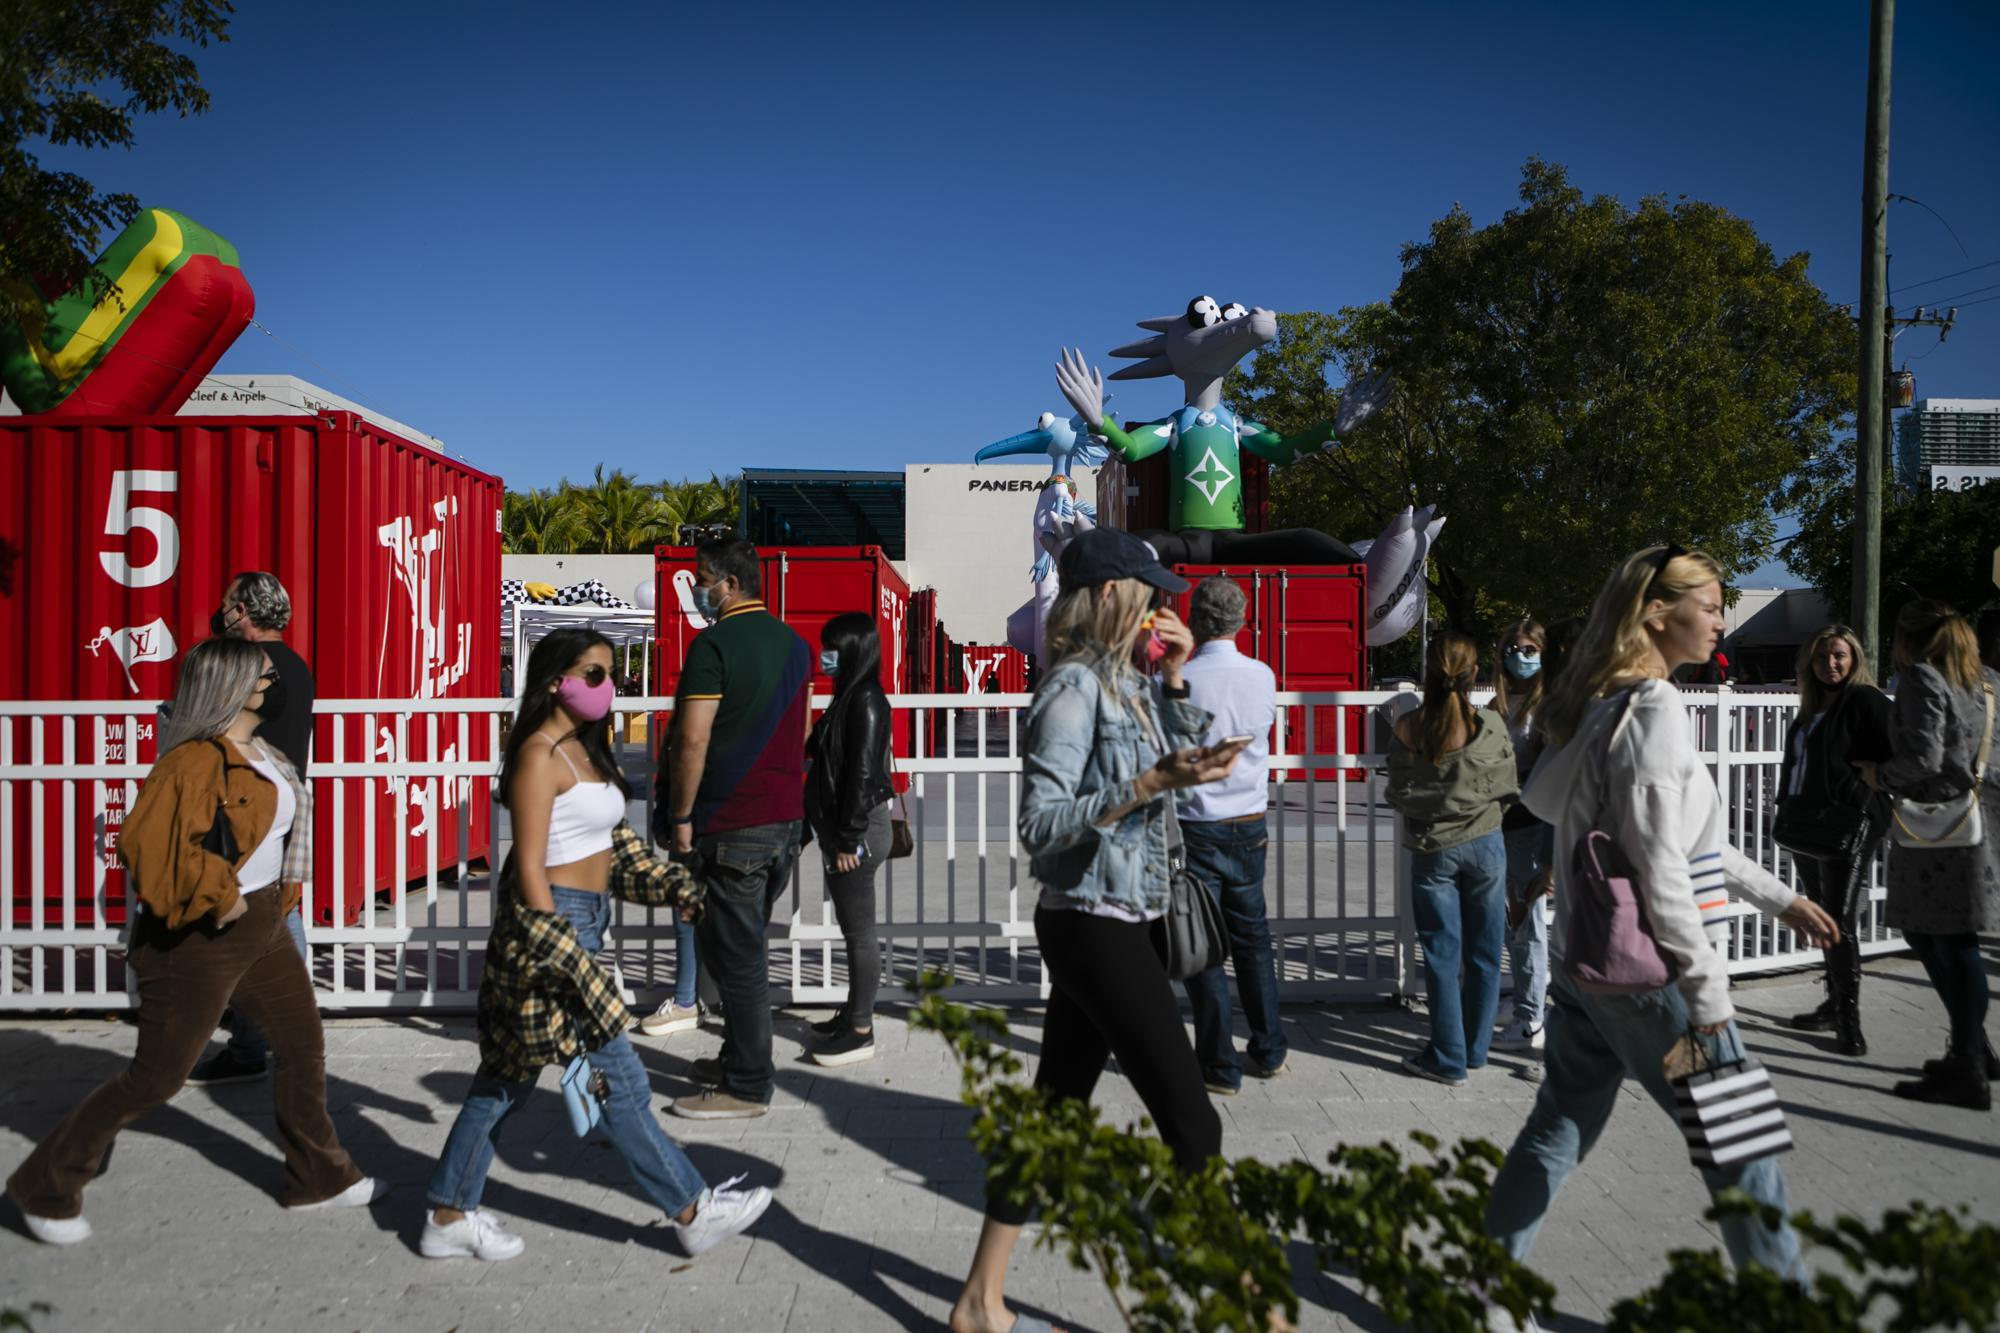 People wait line to visit Louis Vuitton Men's Temporary Residency exhibition, in Miami, Florida on January 09, 2021. Eva Marie UZCATEGUI